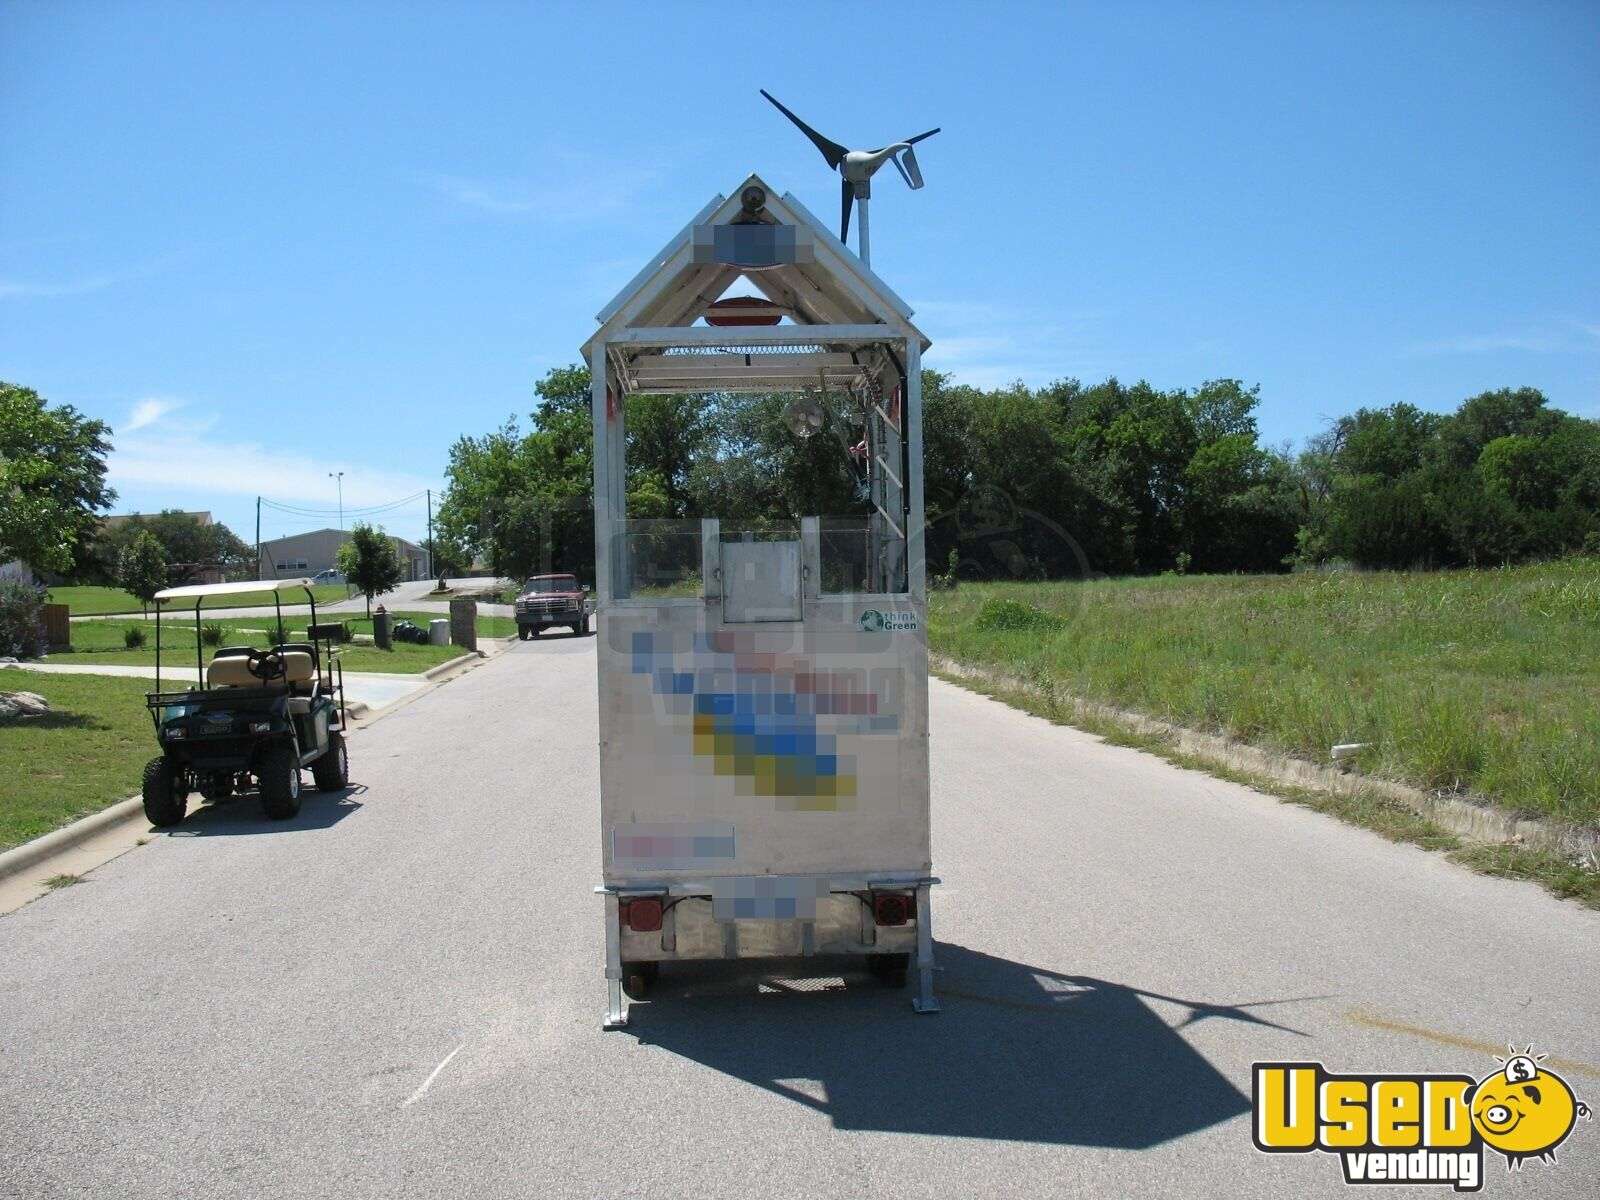 2009 Top Gun Top Dog Self Sufficient Mobile, Model Slt Cart 47 Texas for Sale - 47